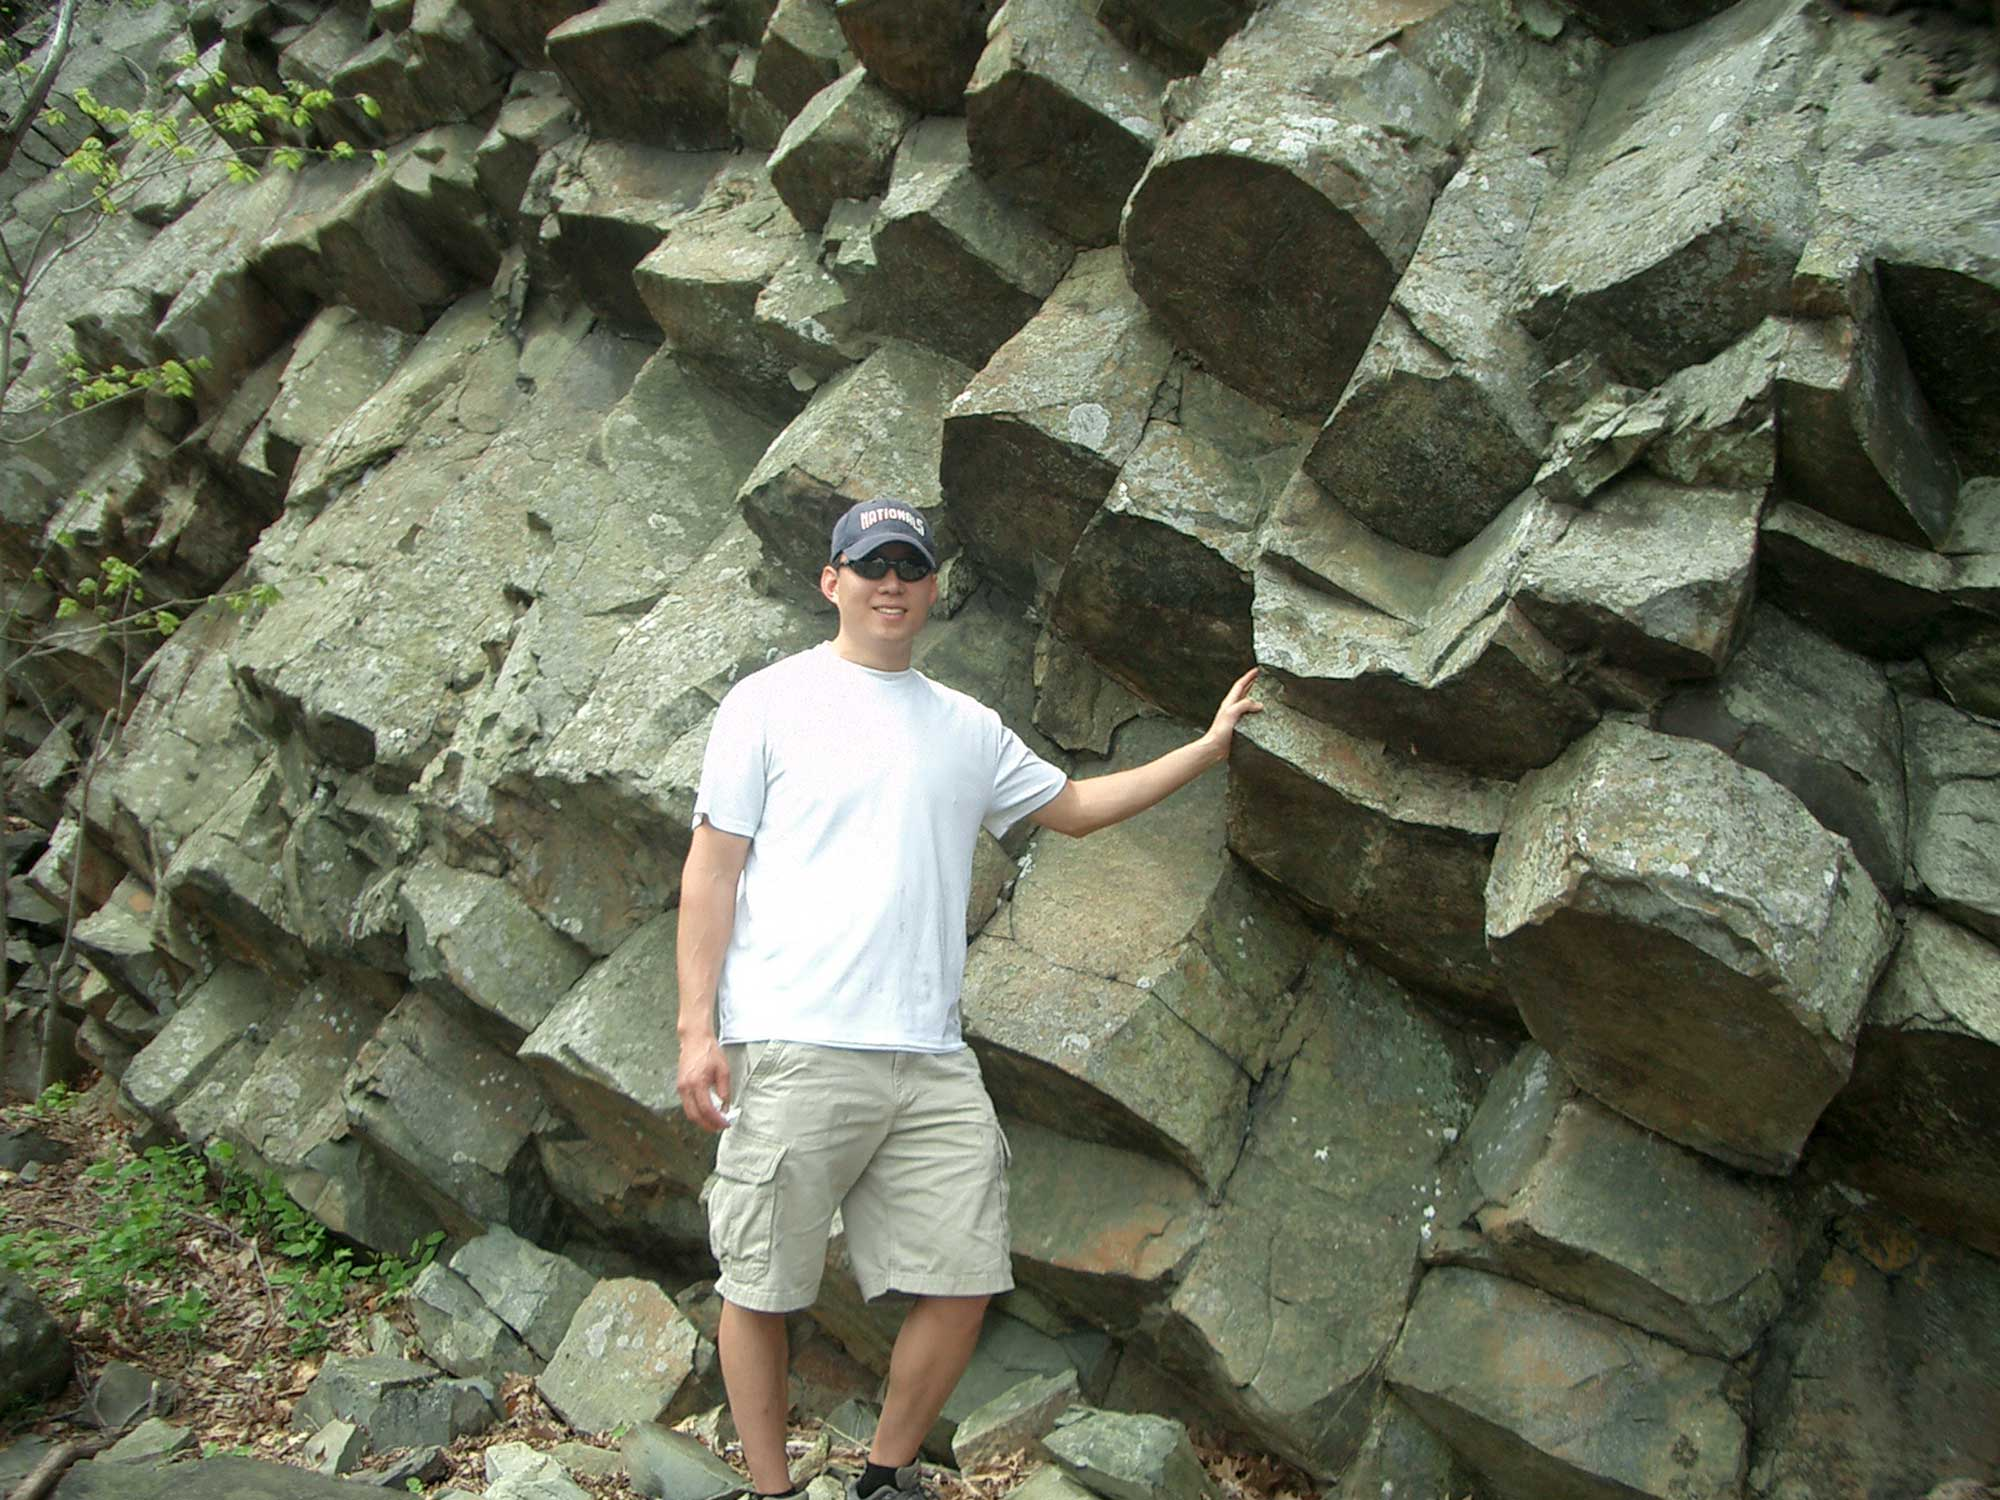 Photograph of a man standing next to greenstone rocks that exhibit columnar jointing.